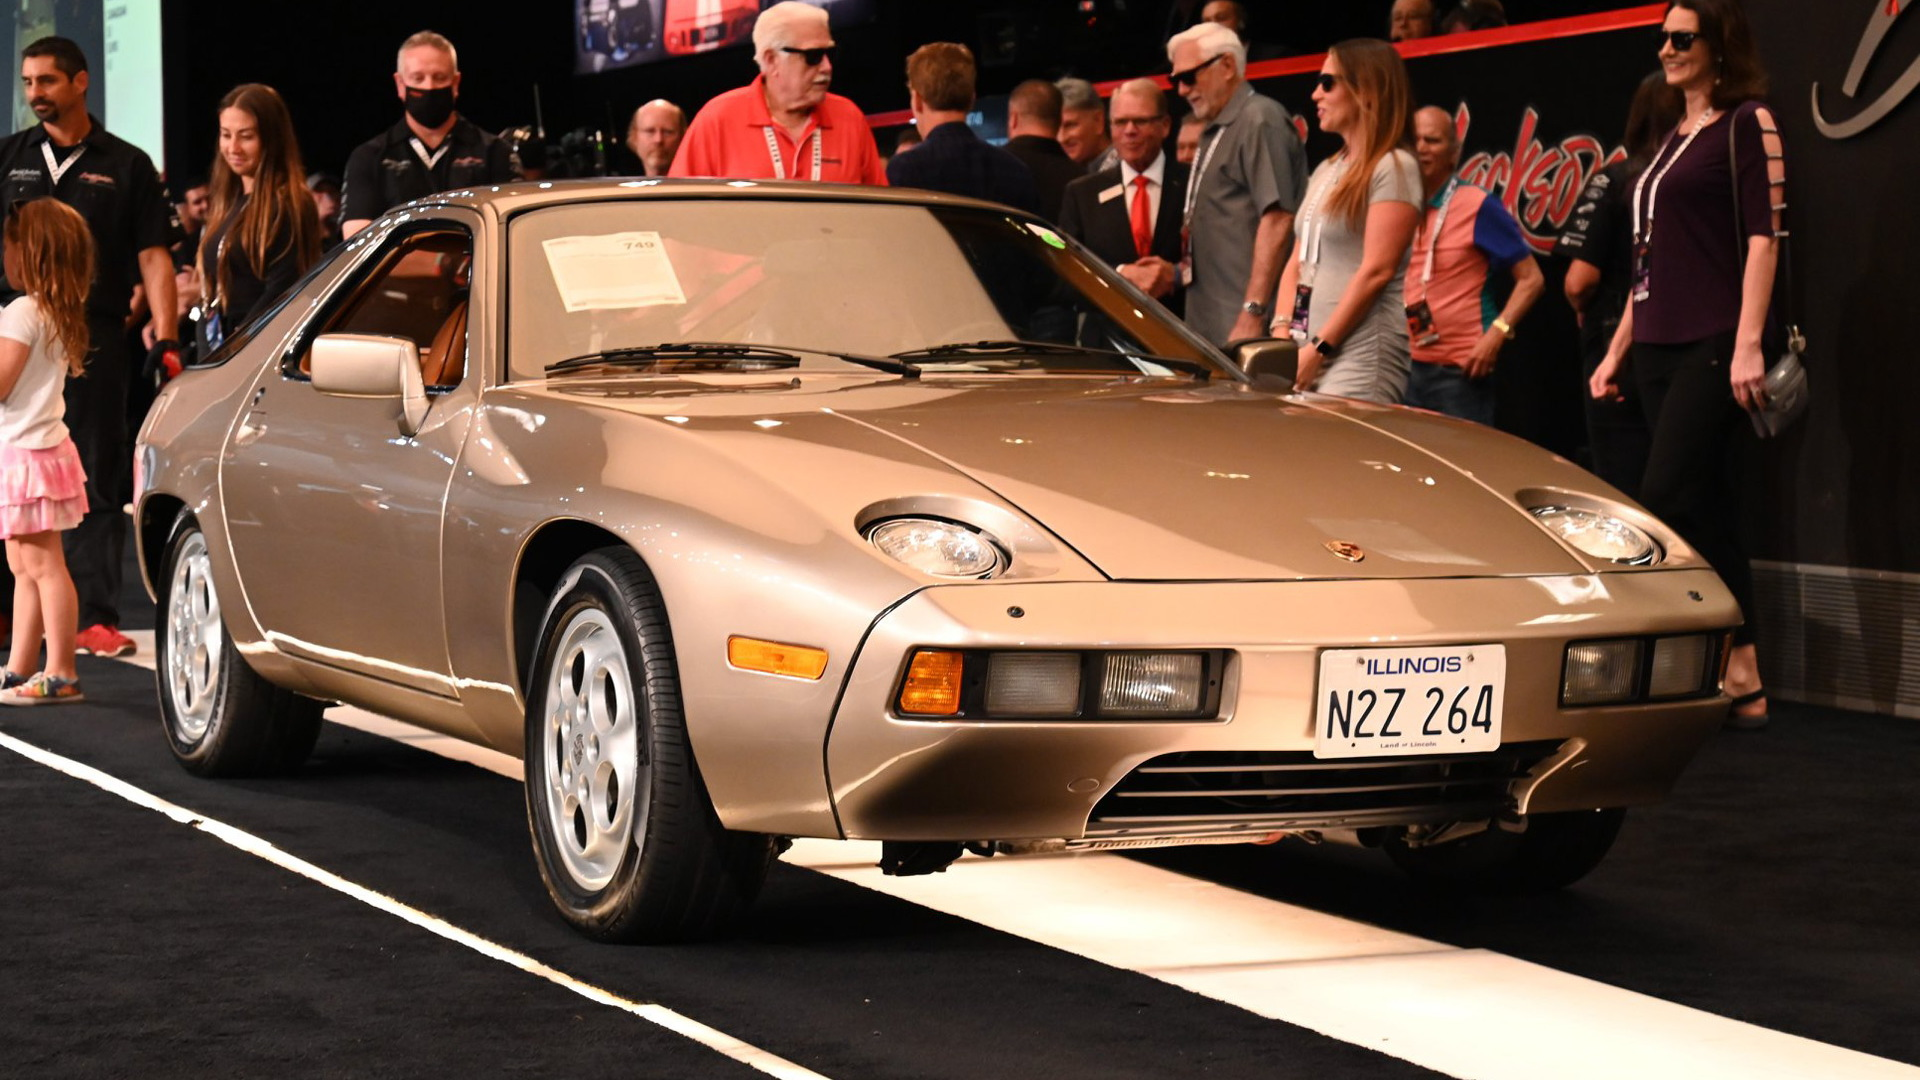 """1979 Porsche 928 used during filming of """"Risky Business"""" - Photo credit: Barrett-Jackson"""